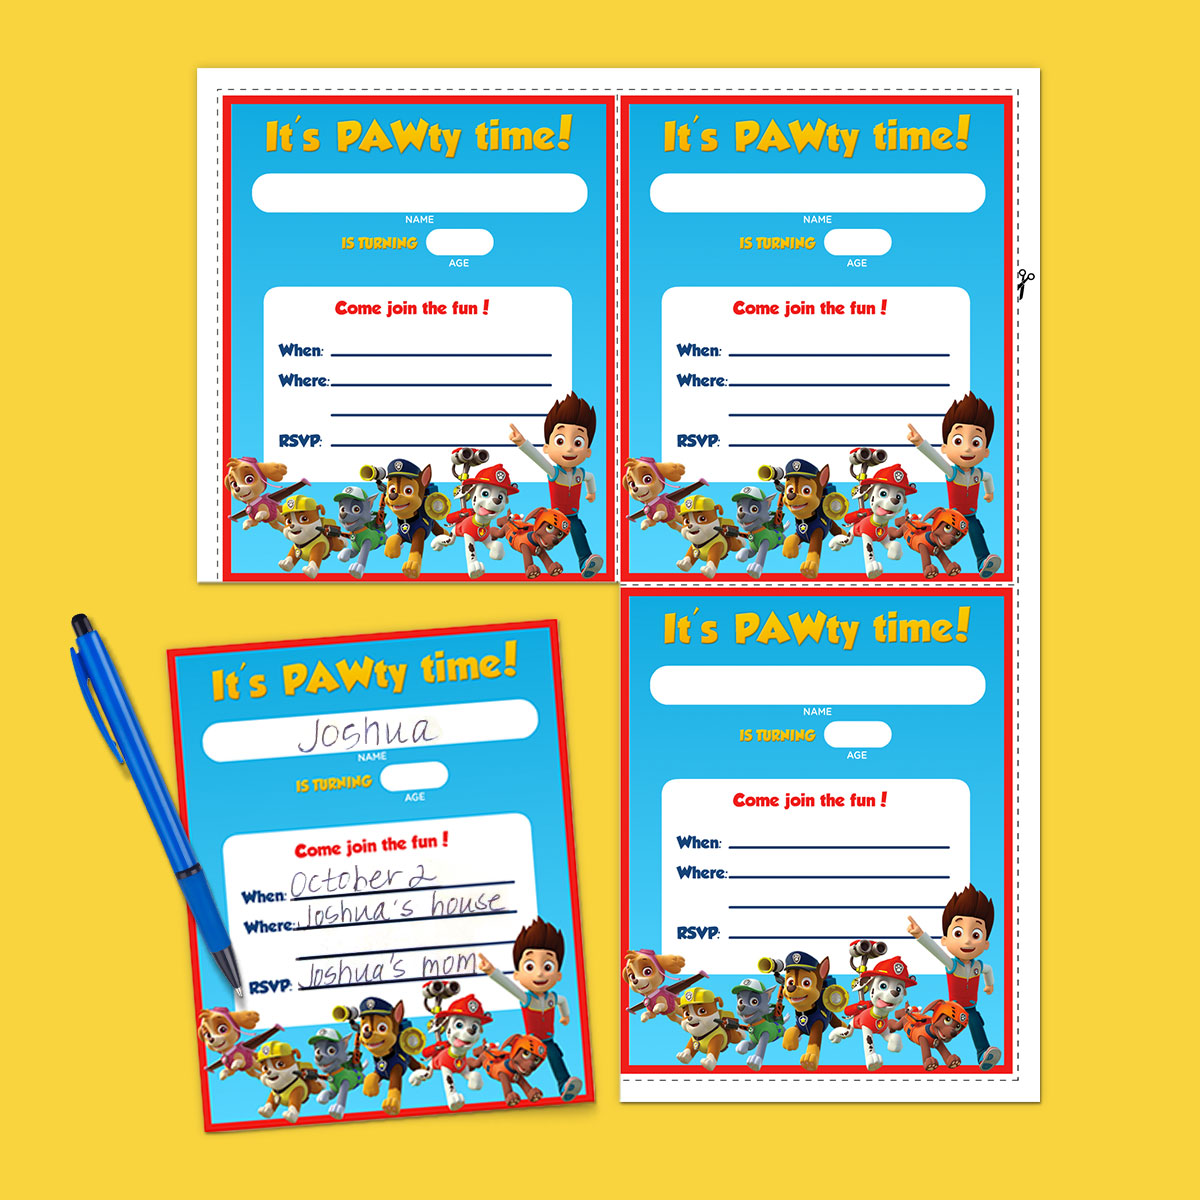 PAW Patrol Party Invitations